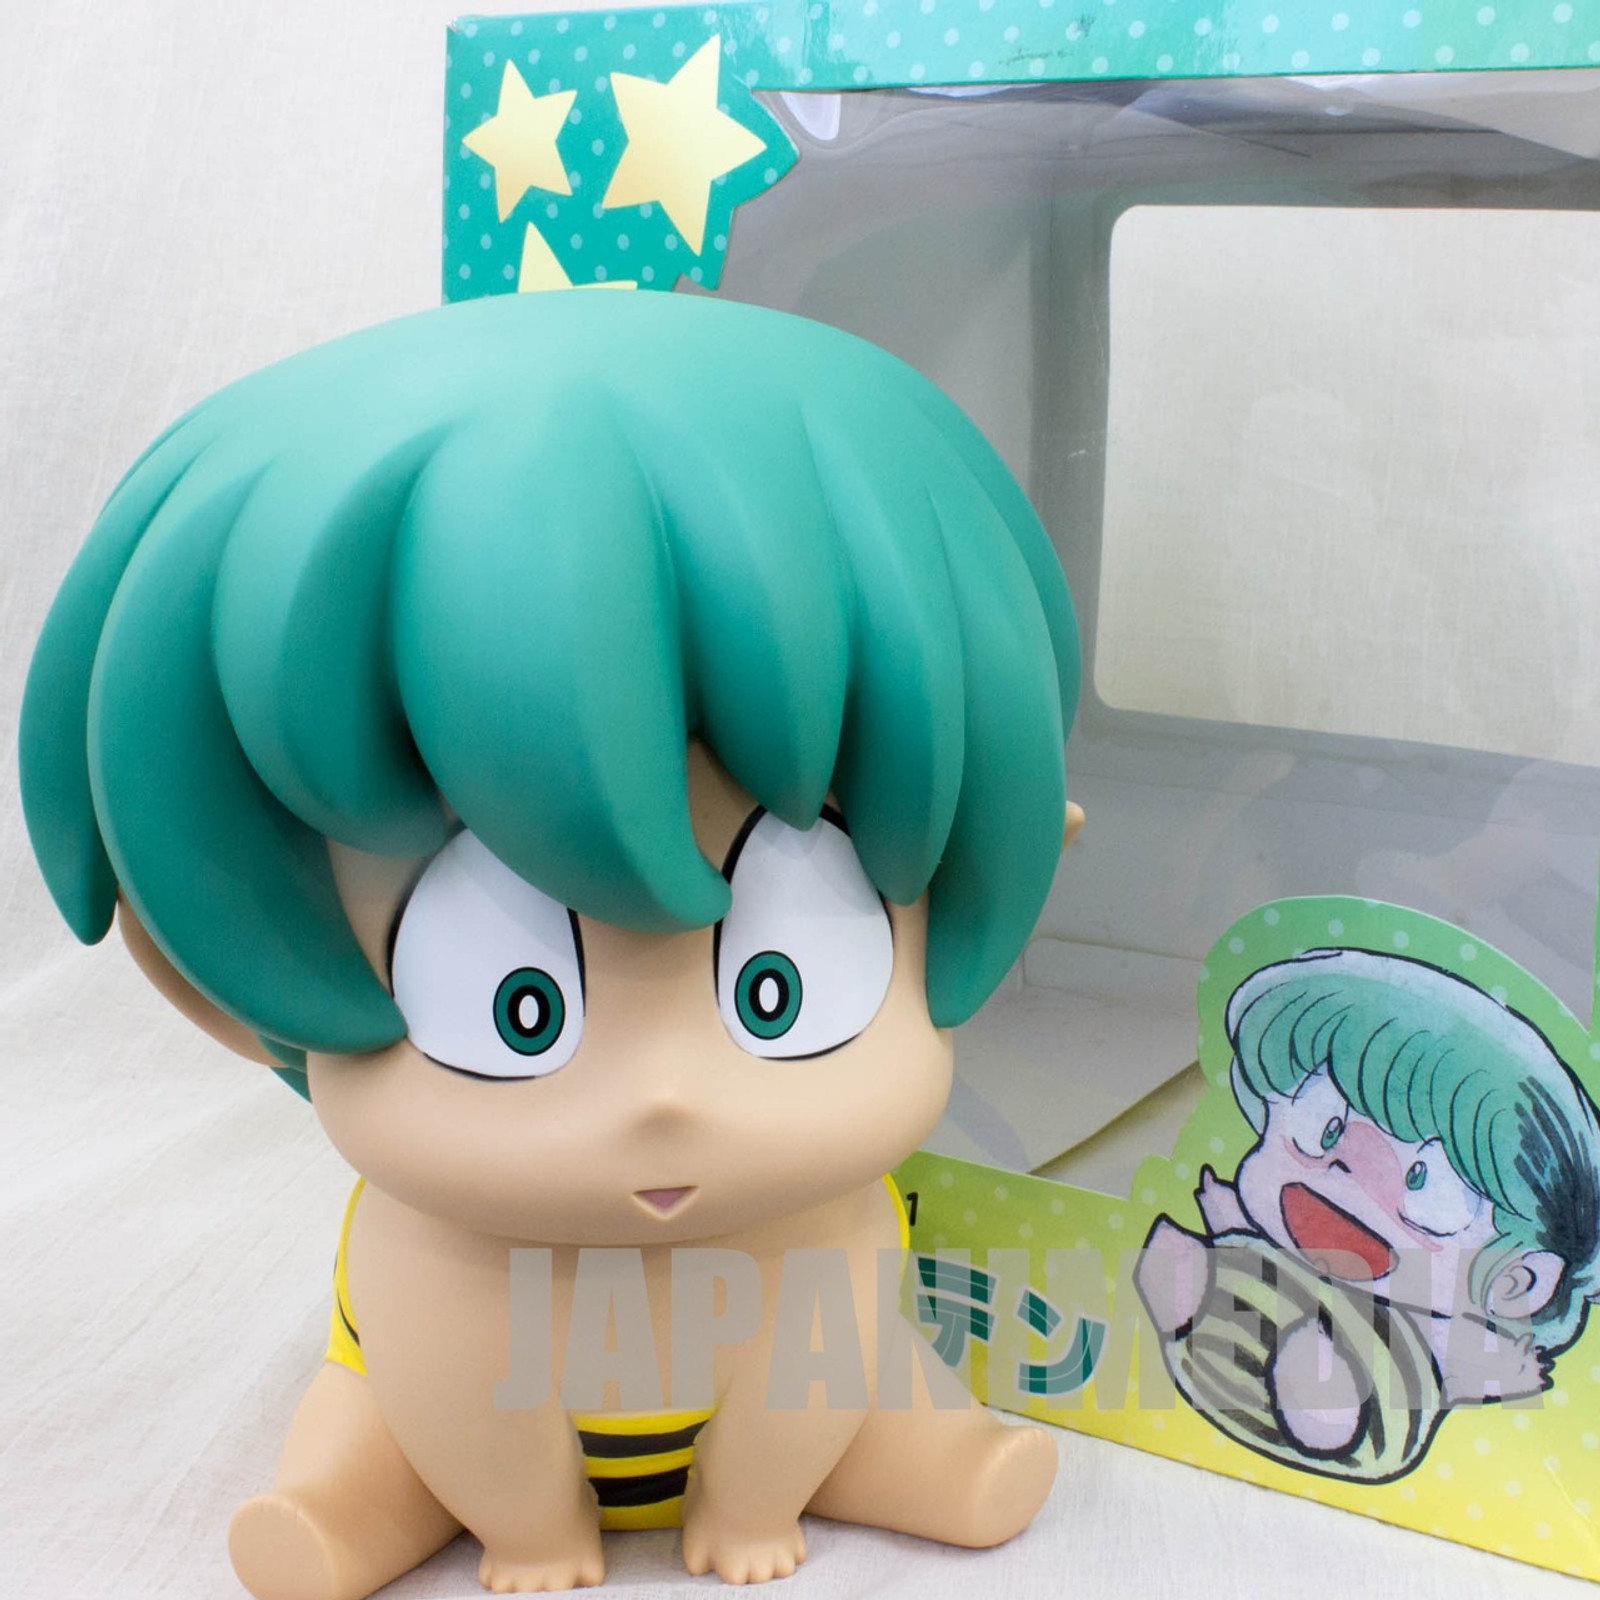 Urusei Yatsura TEN Chan 1/1 Scale Big Soft Vinyl Figure DIve JAPAN ANIME MANGA